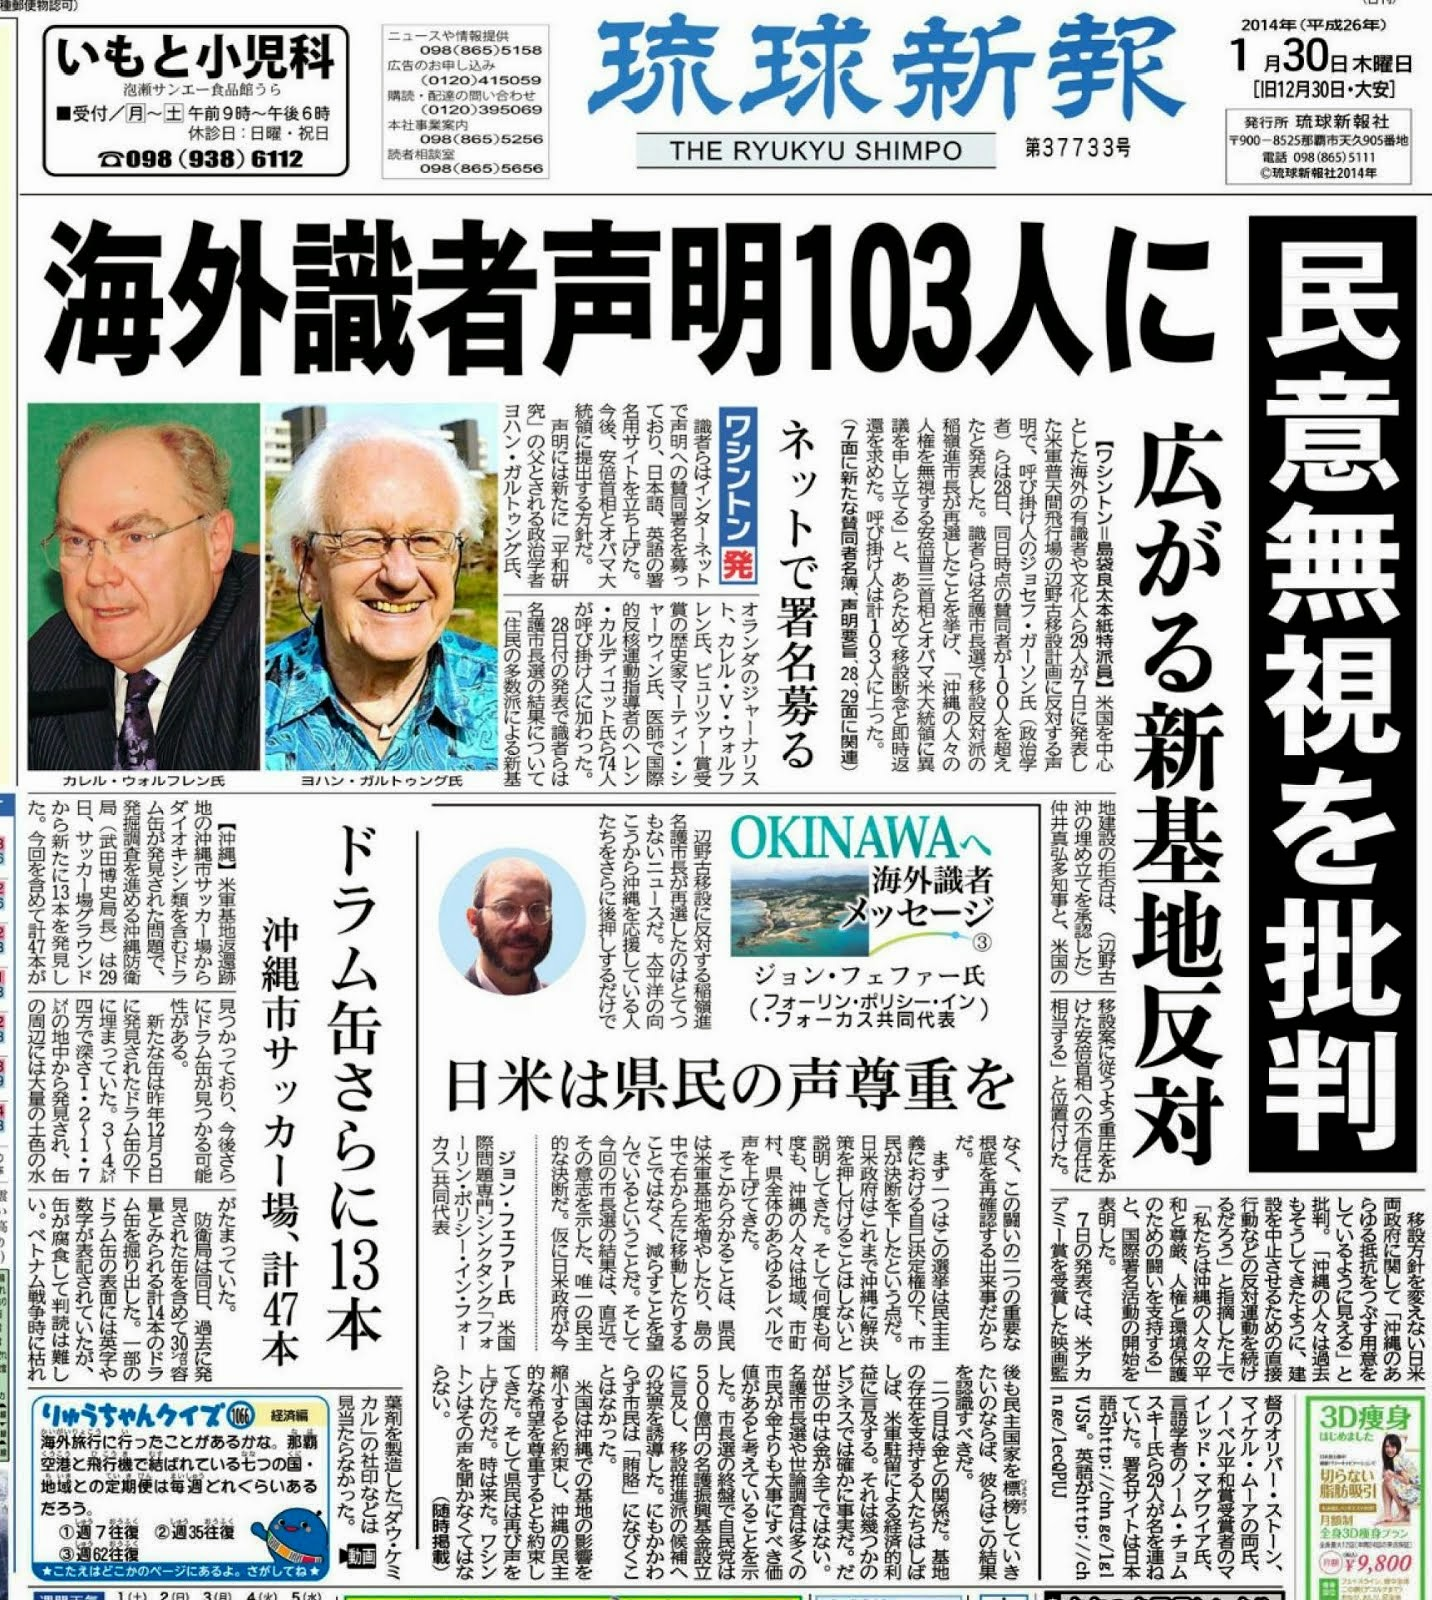 海外識者・文化人沖縄声明賛同者103人 International Okinawa Statement signed by 103 including Johan Galtung